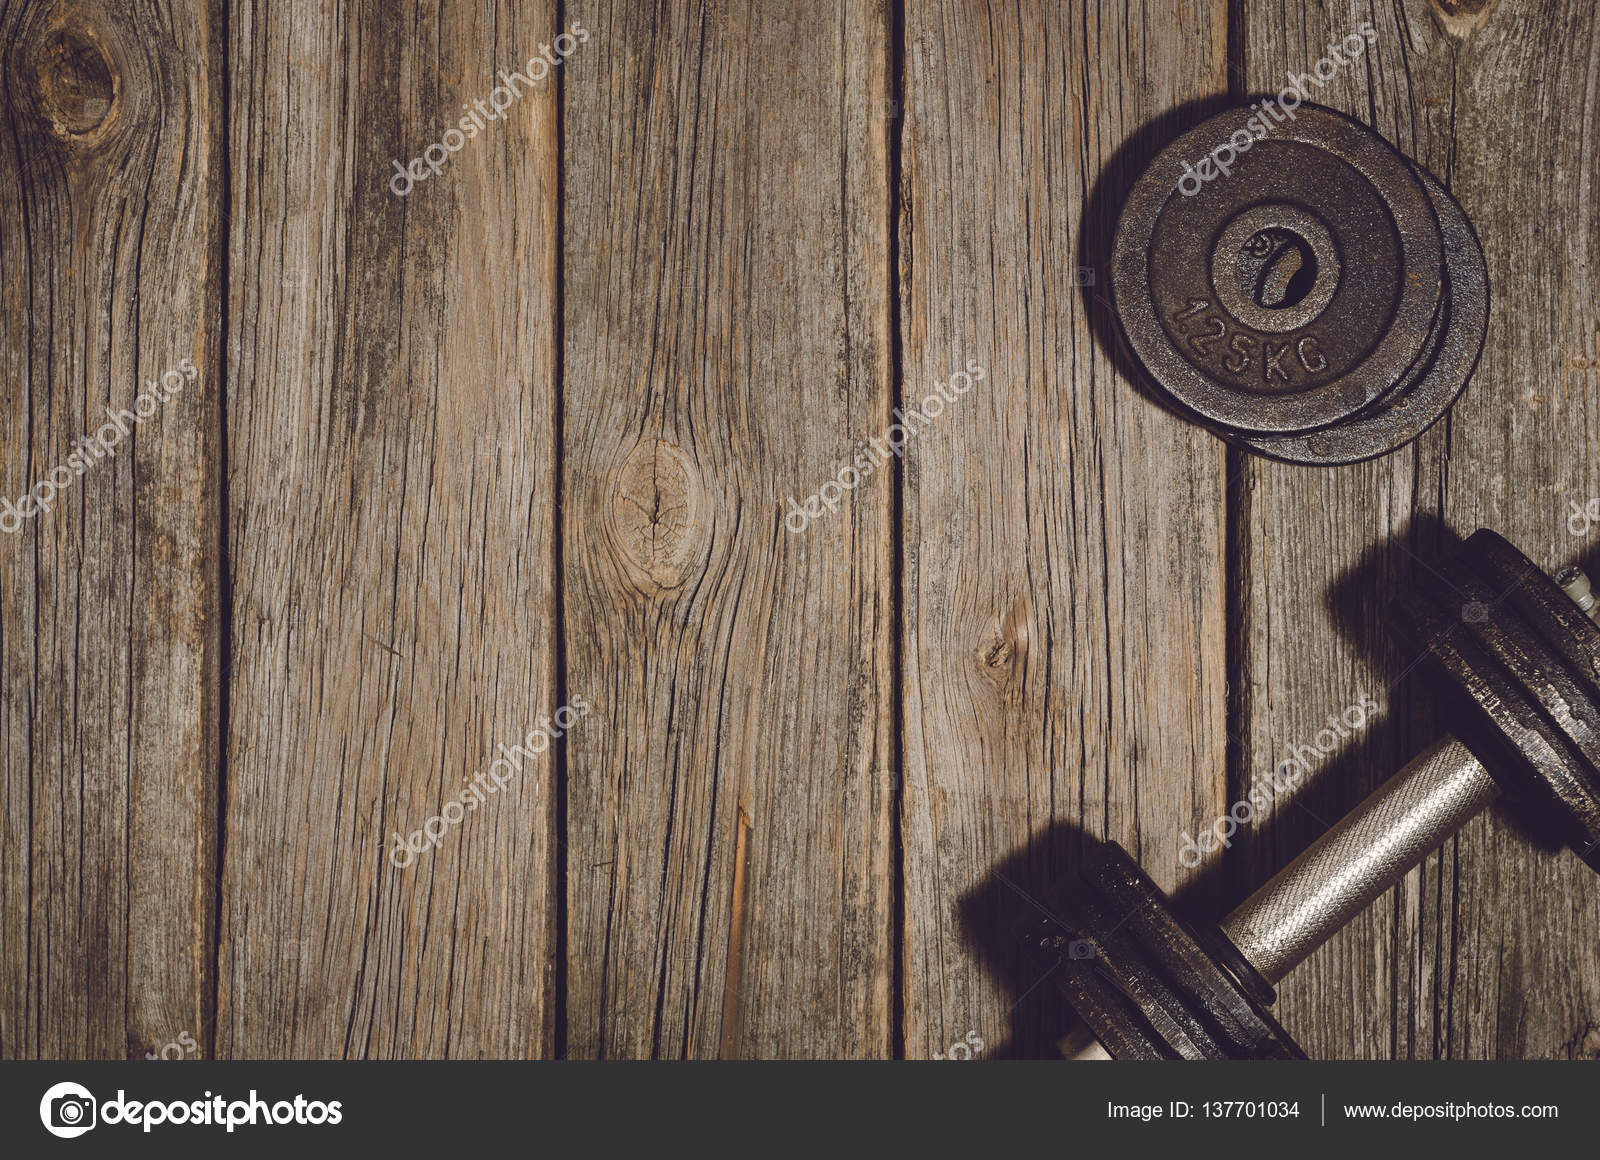 fitness workout background dumbbells on wooden gym floor